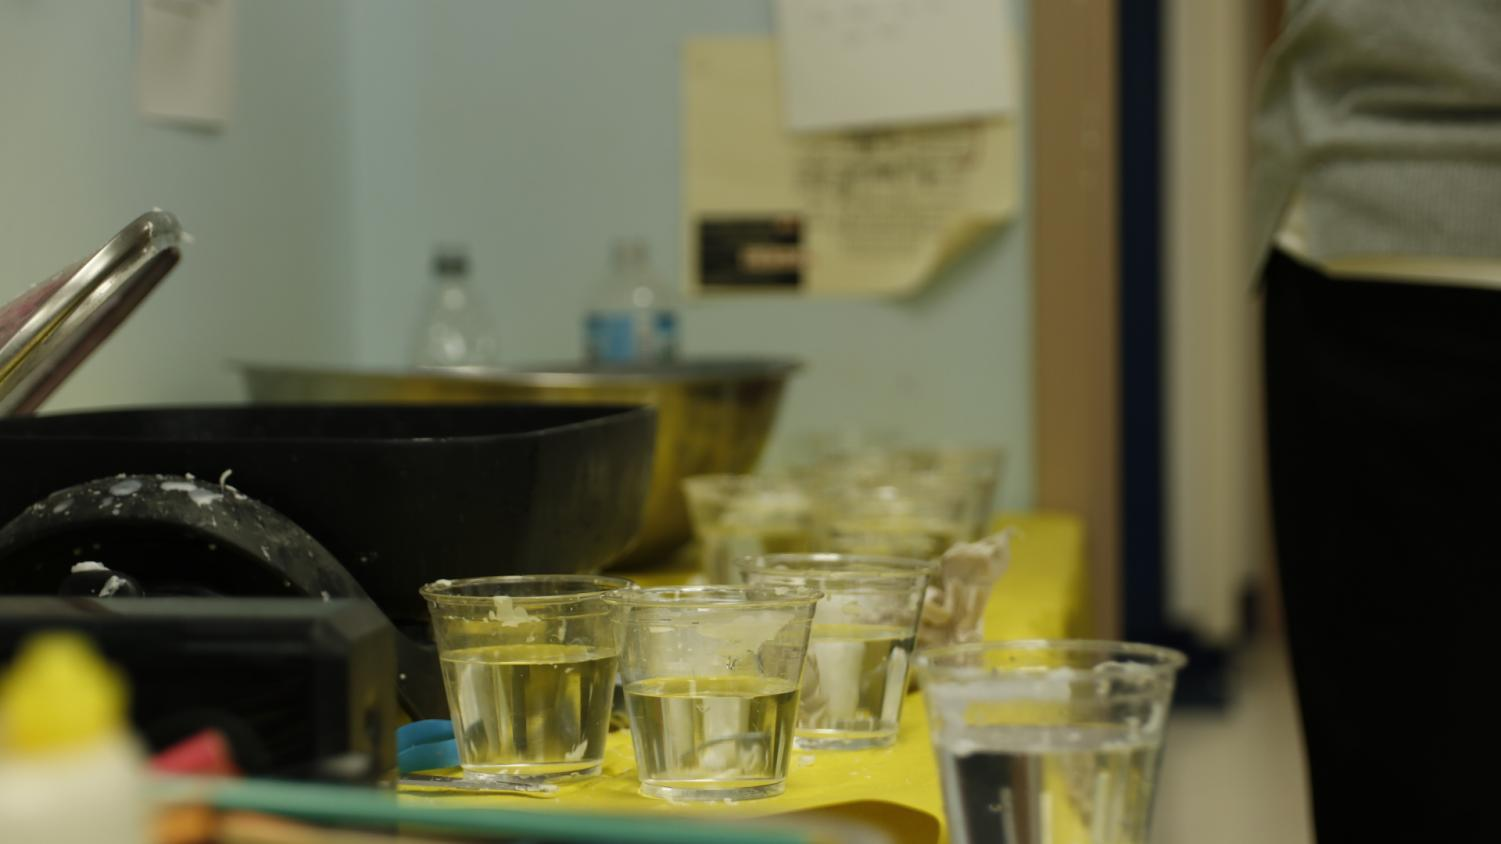 A+row+of+cups+filled+with+cold+water+sit+next+to+a+tray+of+warm+wax.+Students+took+a+ladle+of+hot+wax+out+of+the+tray+and+then+poured+it+into+the+cups%2C+incorporating+the+change+in+temperature+and+the+speed+of+the+pour+to+make+a+shape.+After+they+removed+the+wax+from+the+cup%2C+they+returned+to+their+seats+and+used+a+packet+filled+with+German+words+to+decide+what+shape+their+wax+formed.%0A